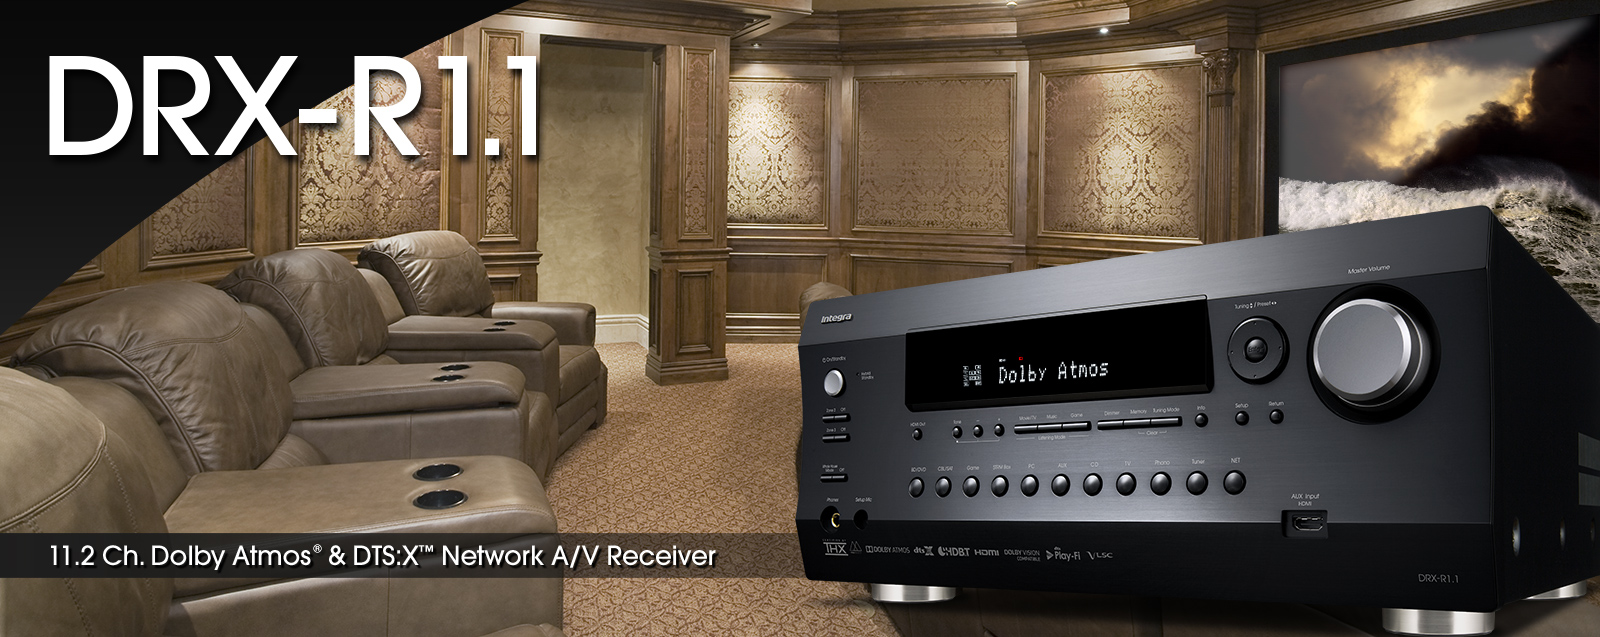 DRX-R1 1 | INTEGRA HOME THEATER